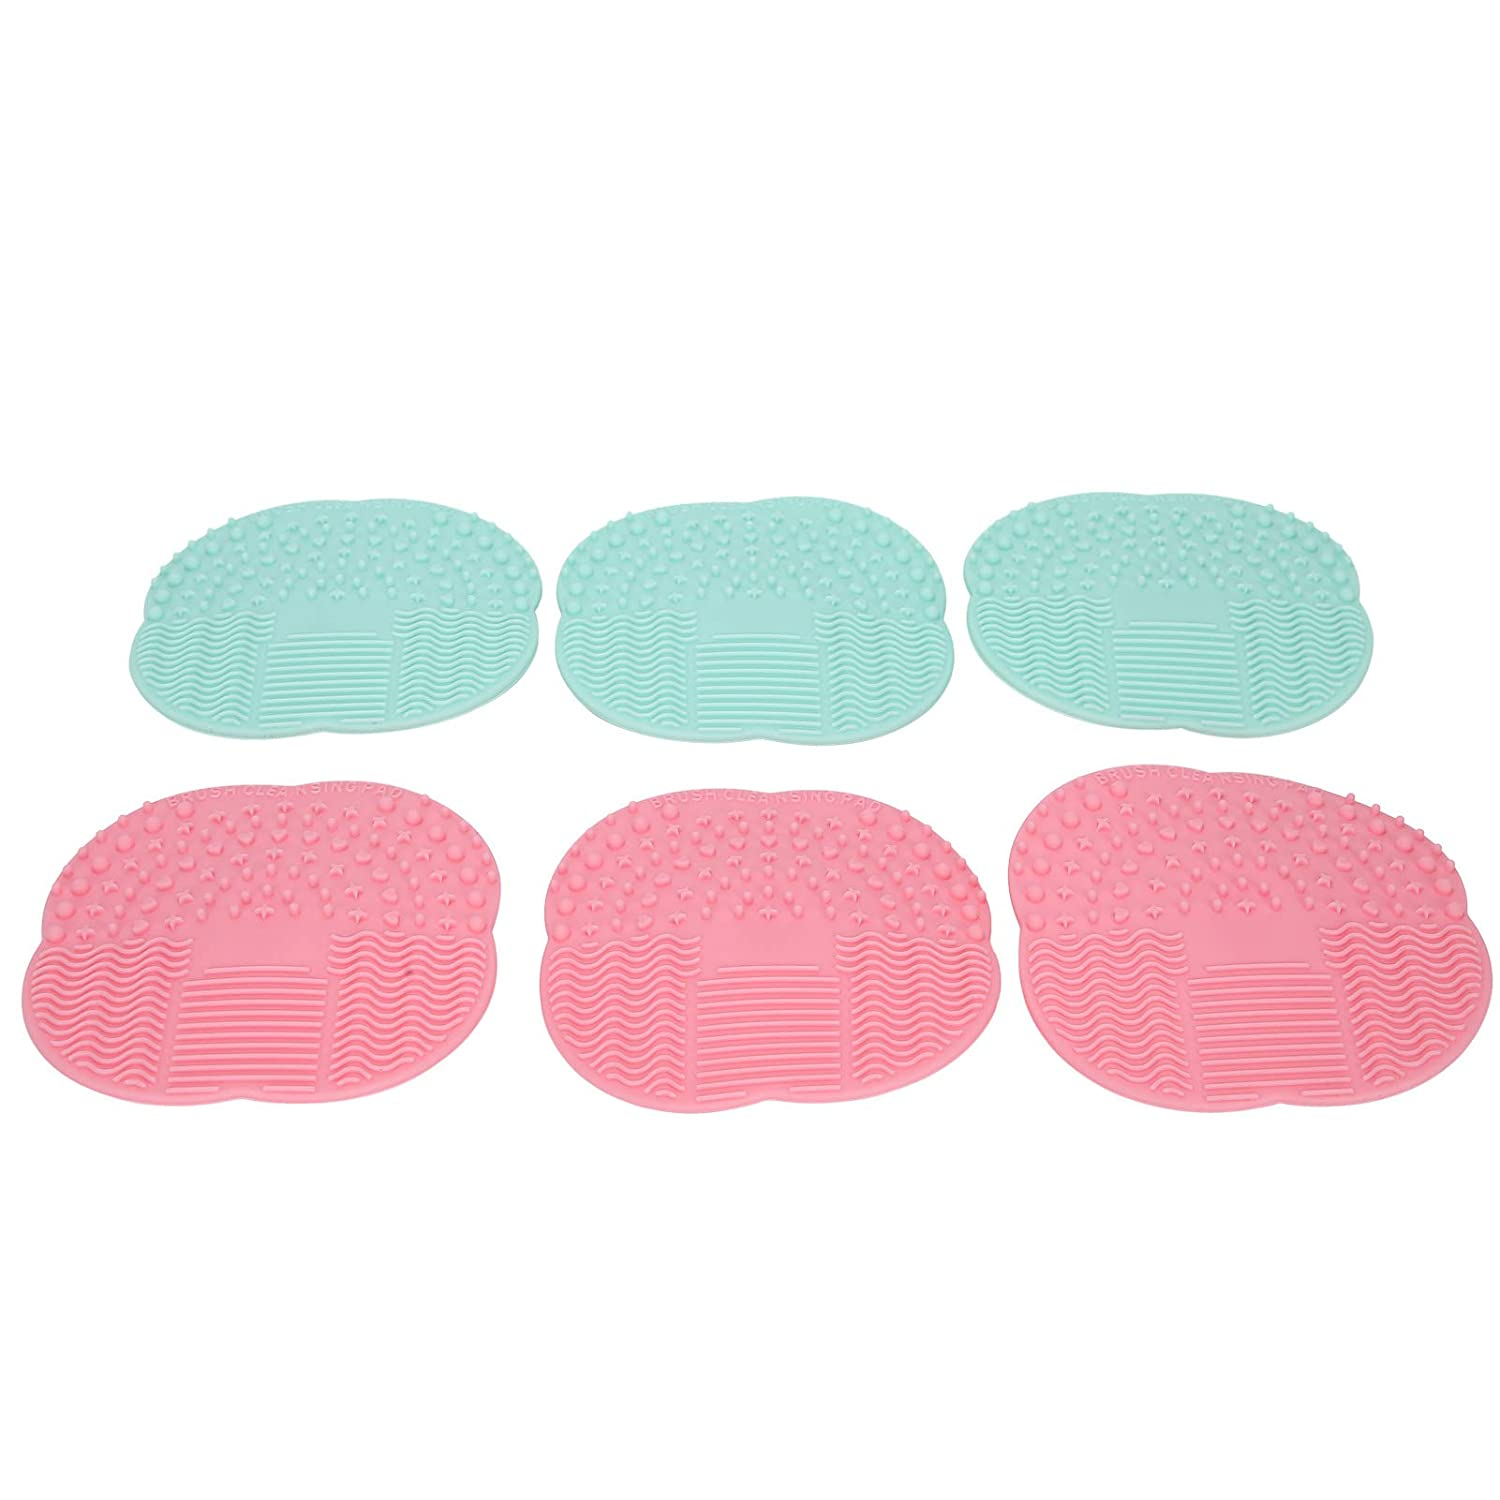 6pcs Makeup Brush Cleaner Pad Practical Ranking TOP8 cosmetic Shipping included brush cleaning